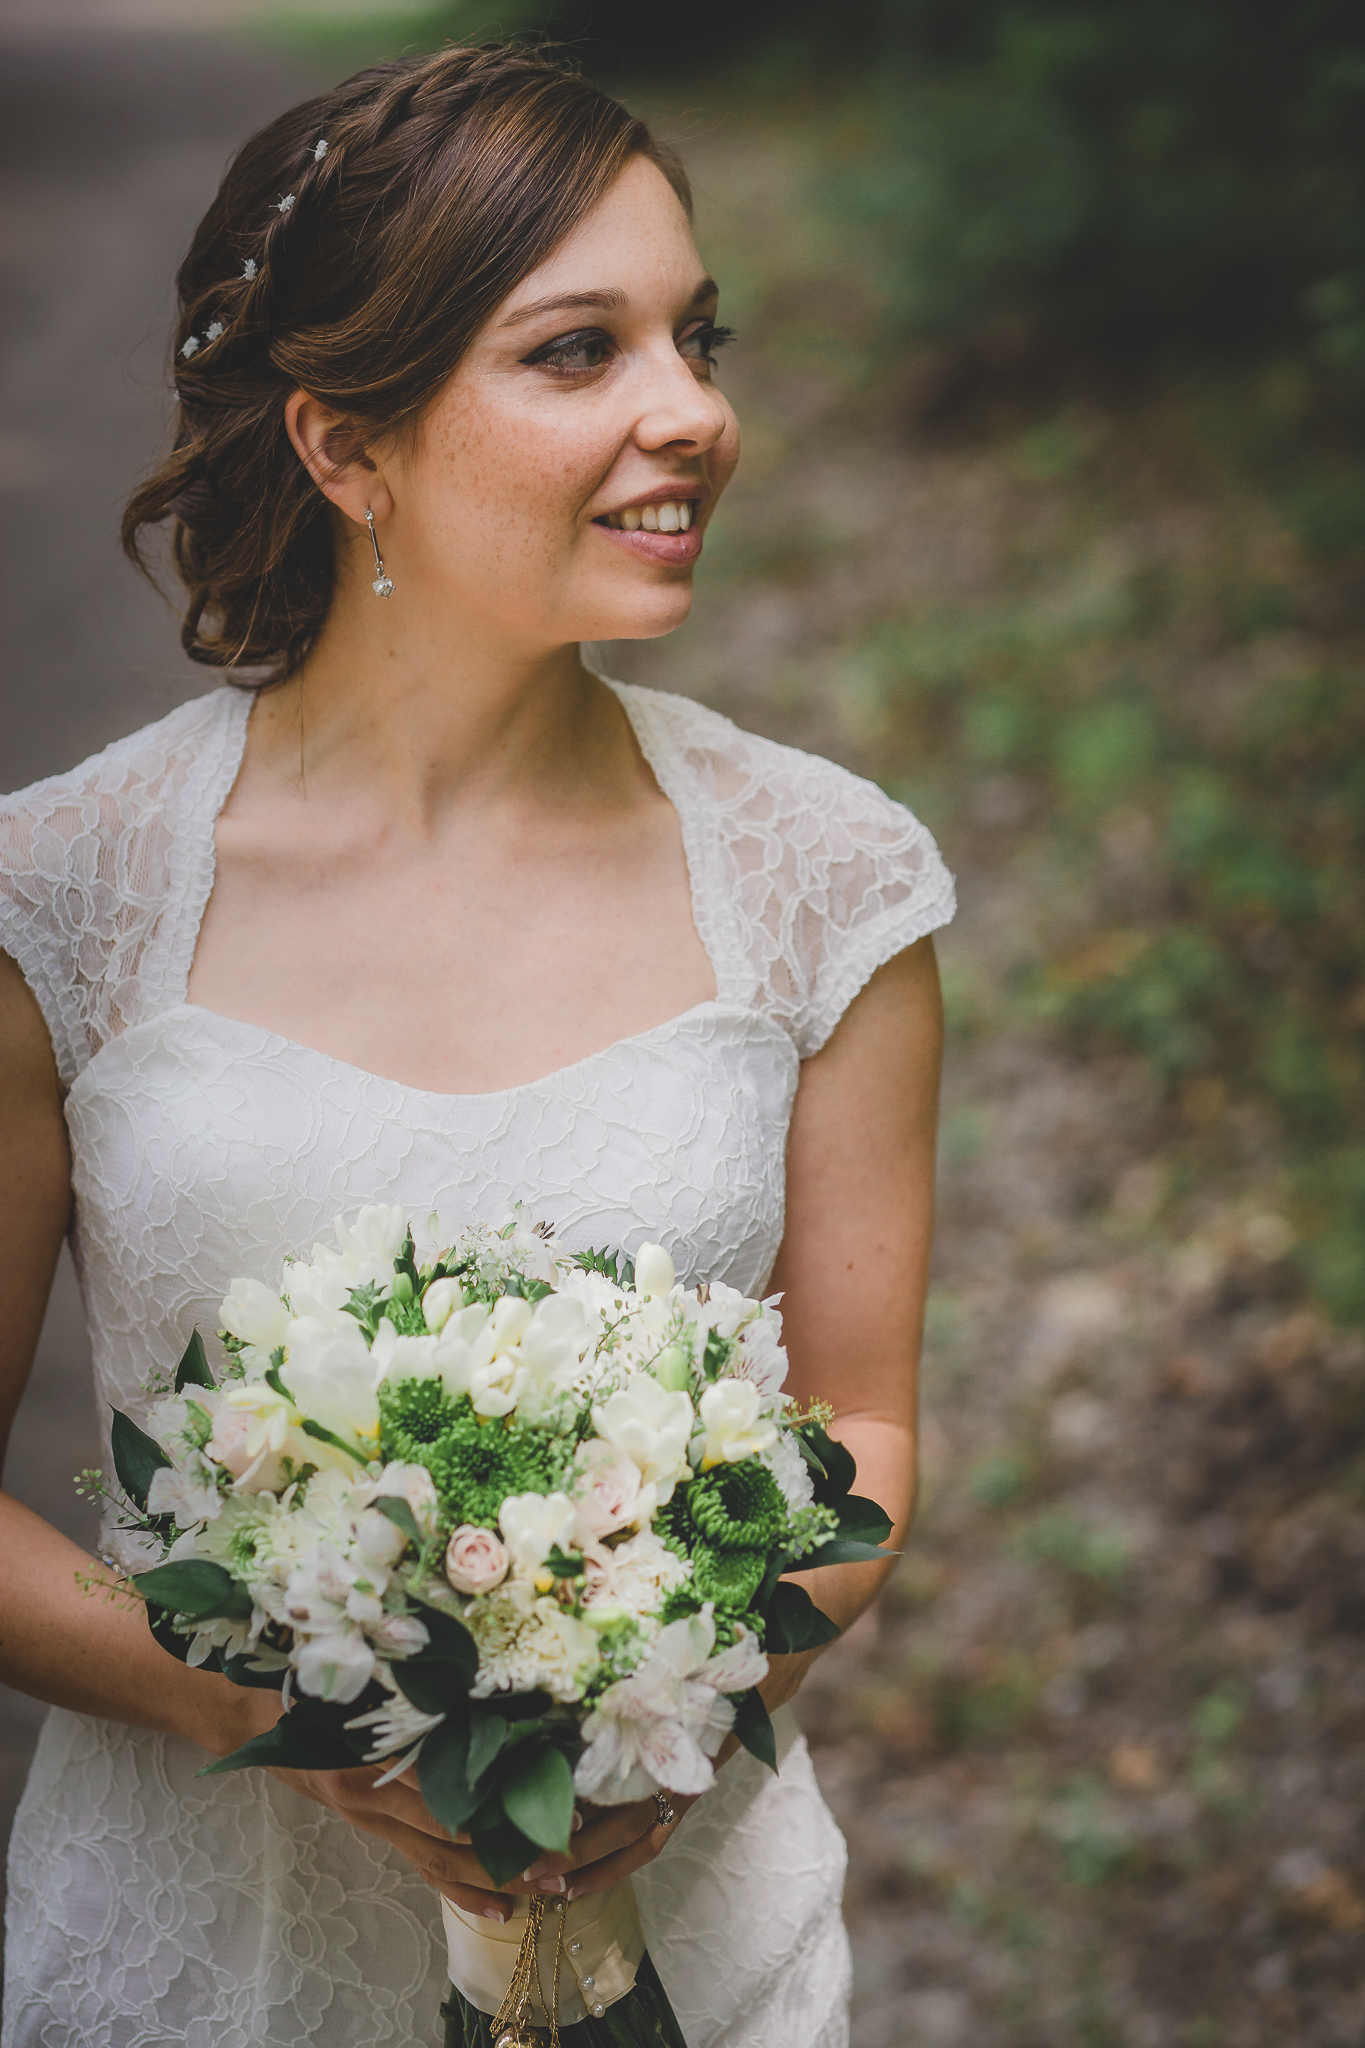 First Look- Amy D Photography- Wedding Photography- Barrie Wedding Photographer - Barrie Wedding Photography- Wedding First Look- First Look Forest-4.jpg